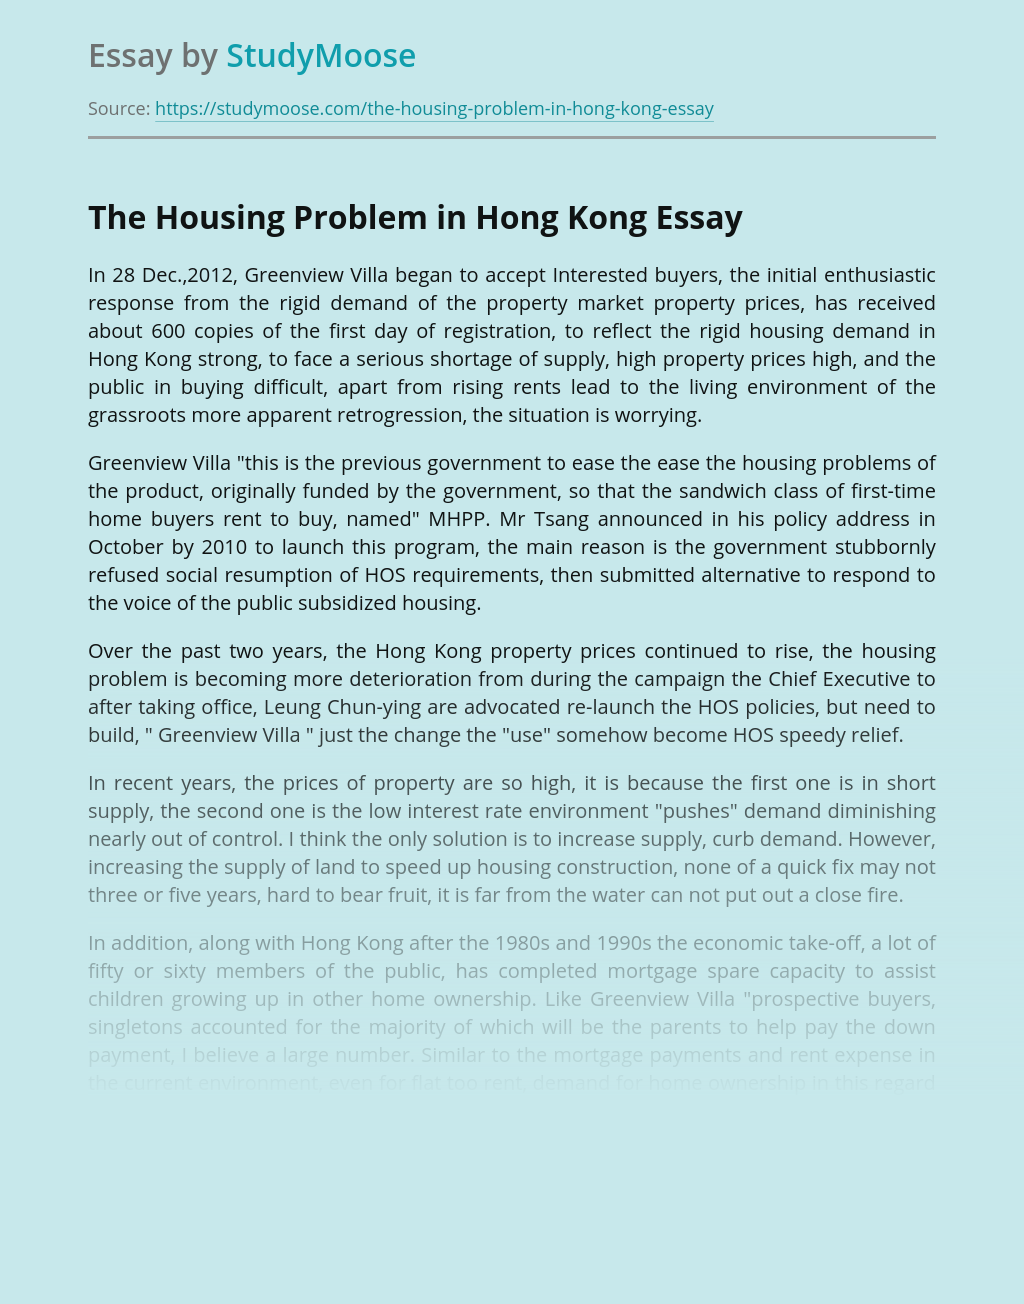 The Housing Problem in Hong Kong